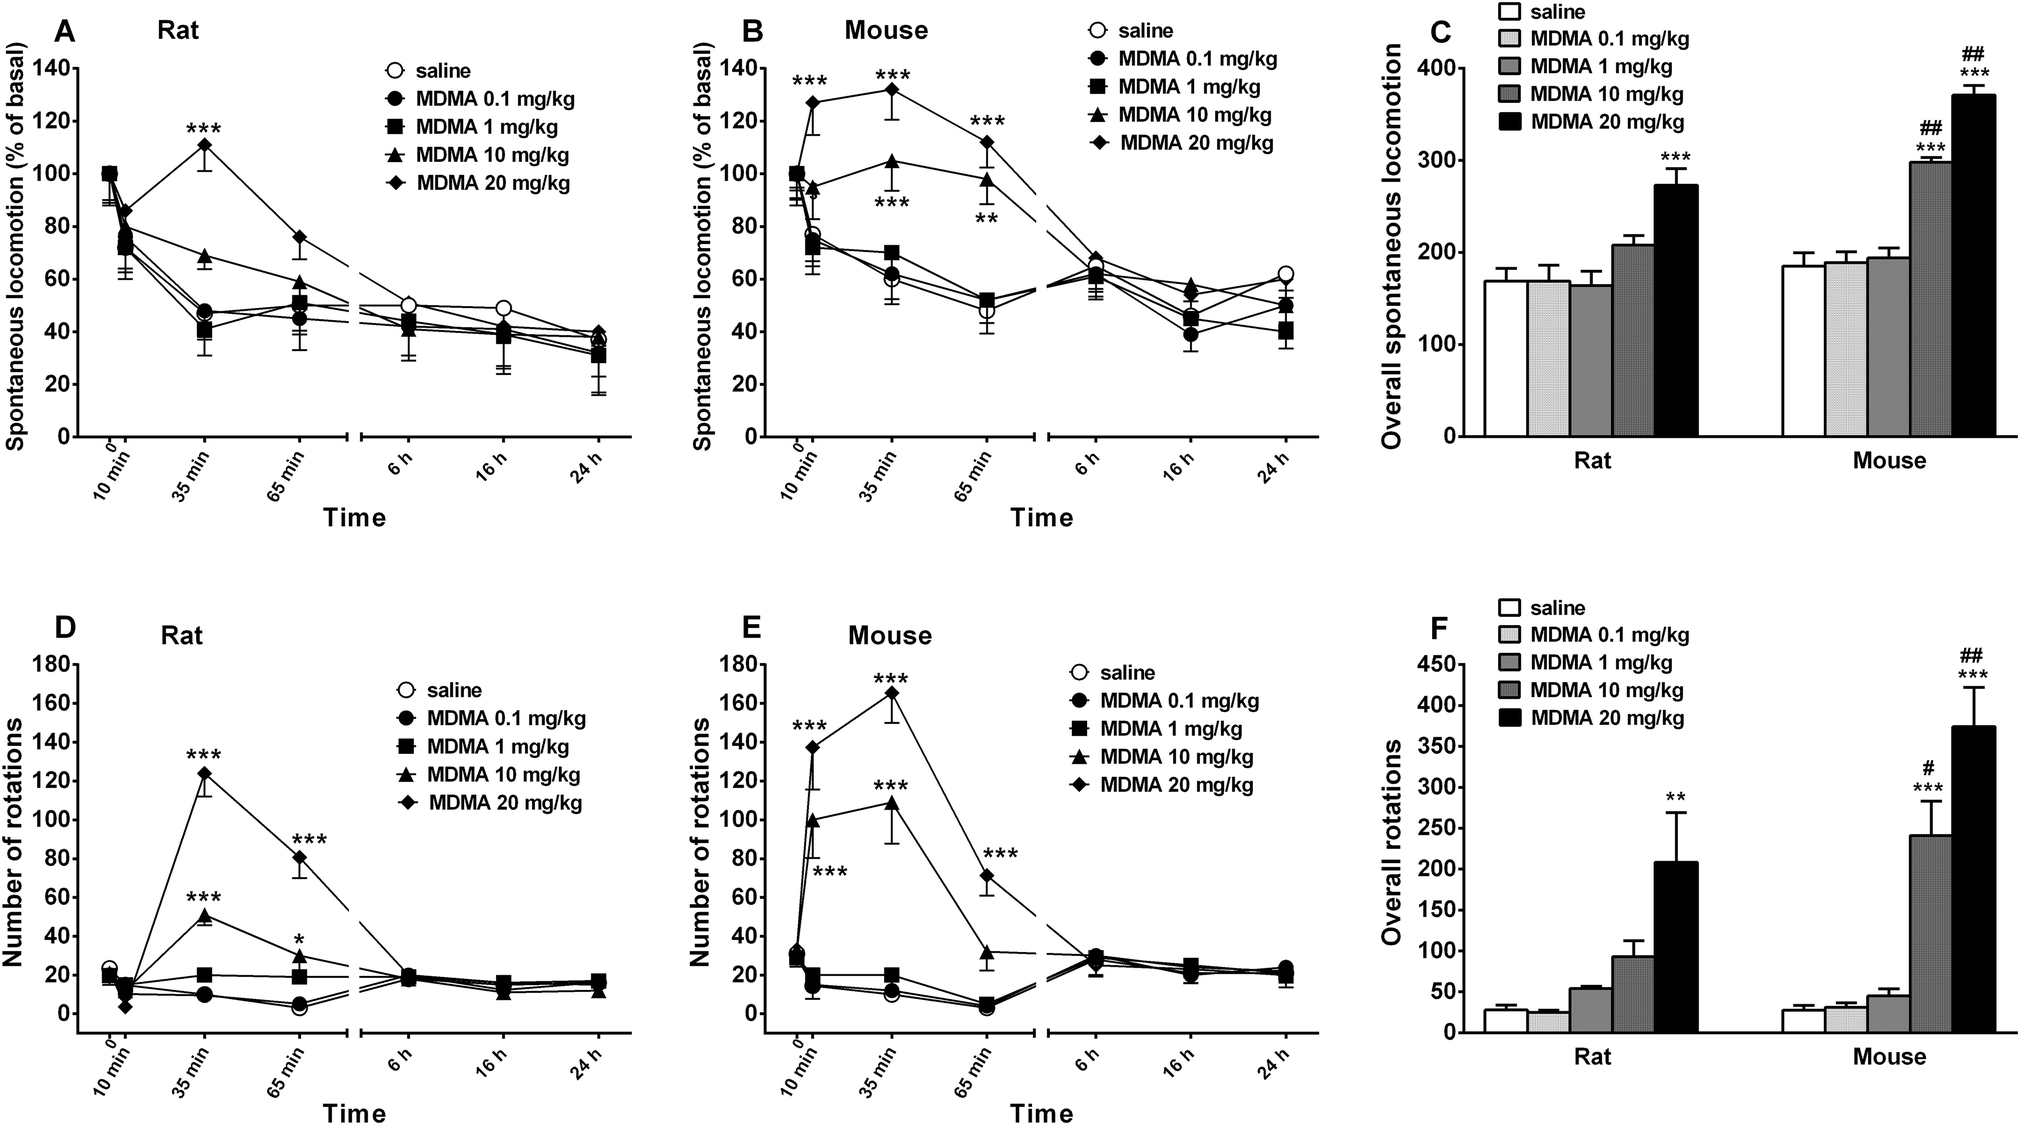 MDMA alone affects sensorimotor and prepulse inhibition responses in